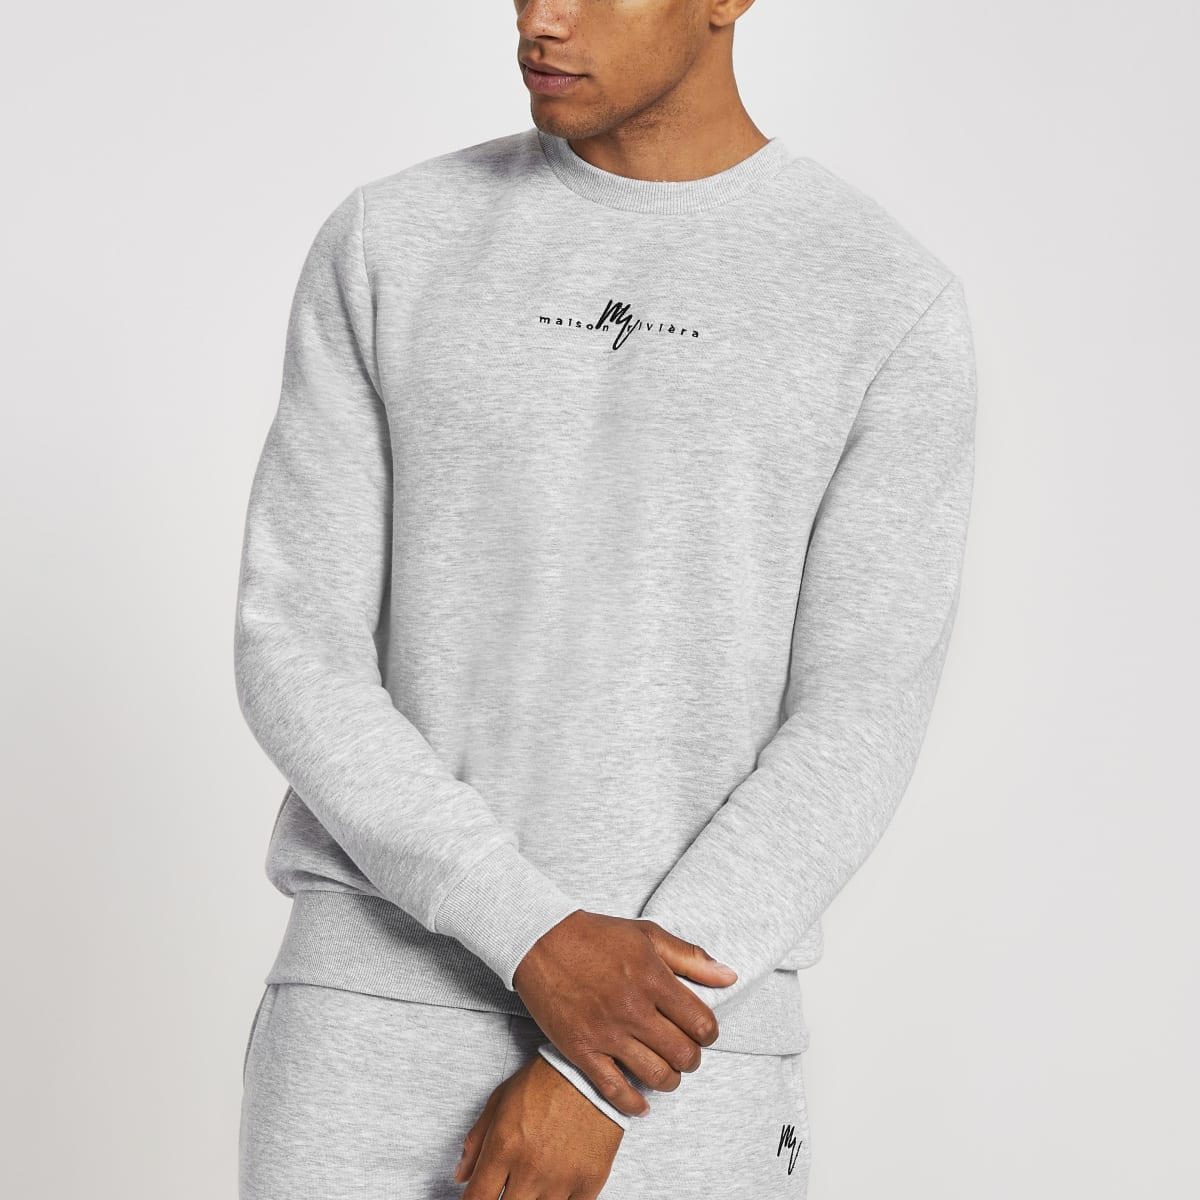 Maison Riviera - Grijze slim-fit sweater